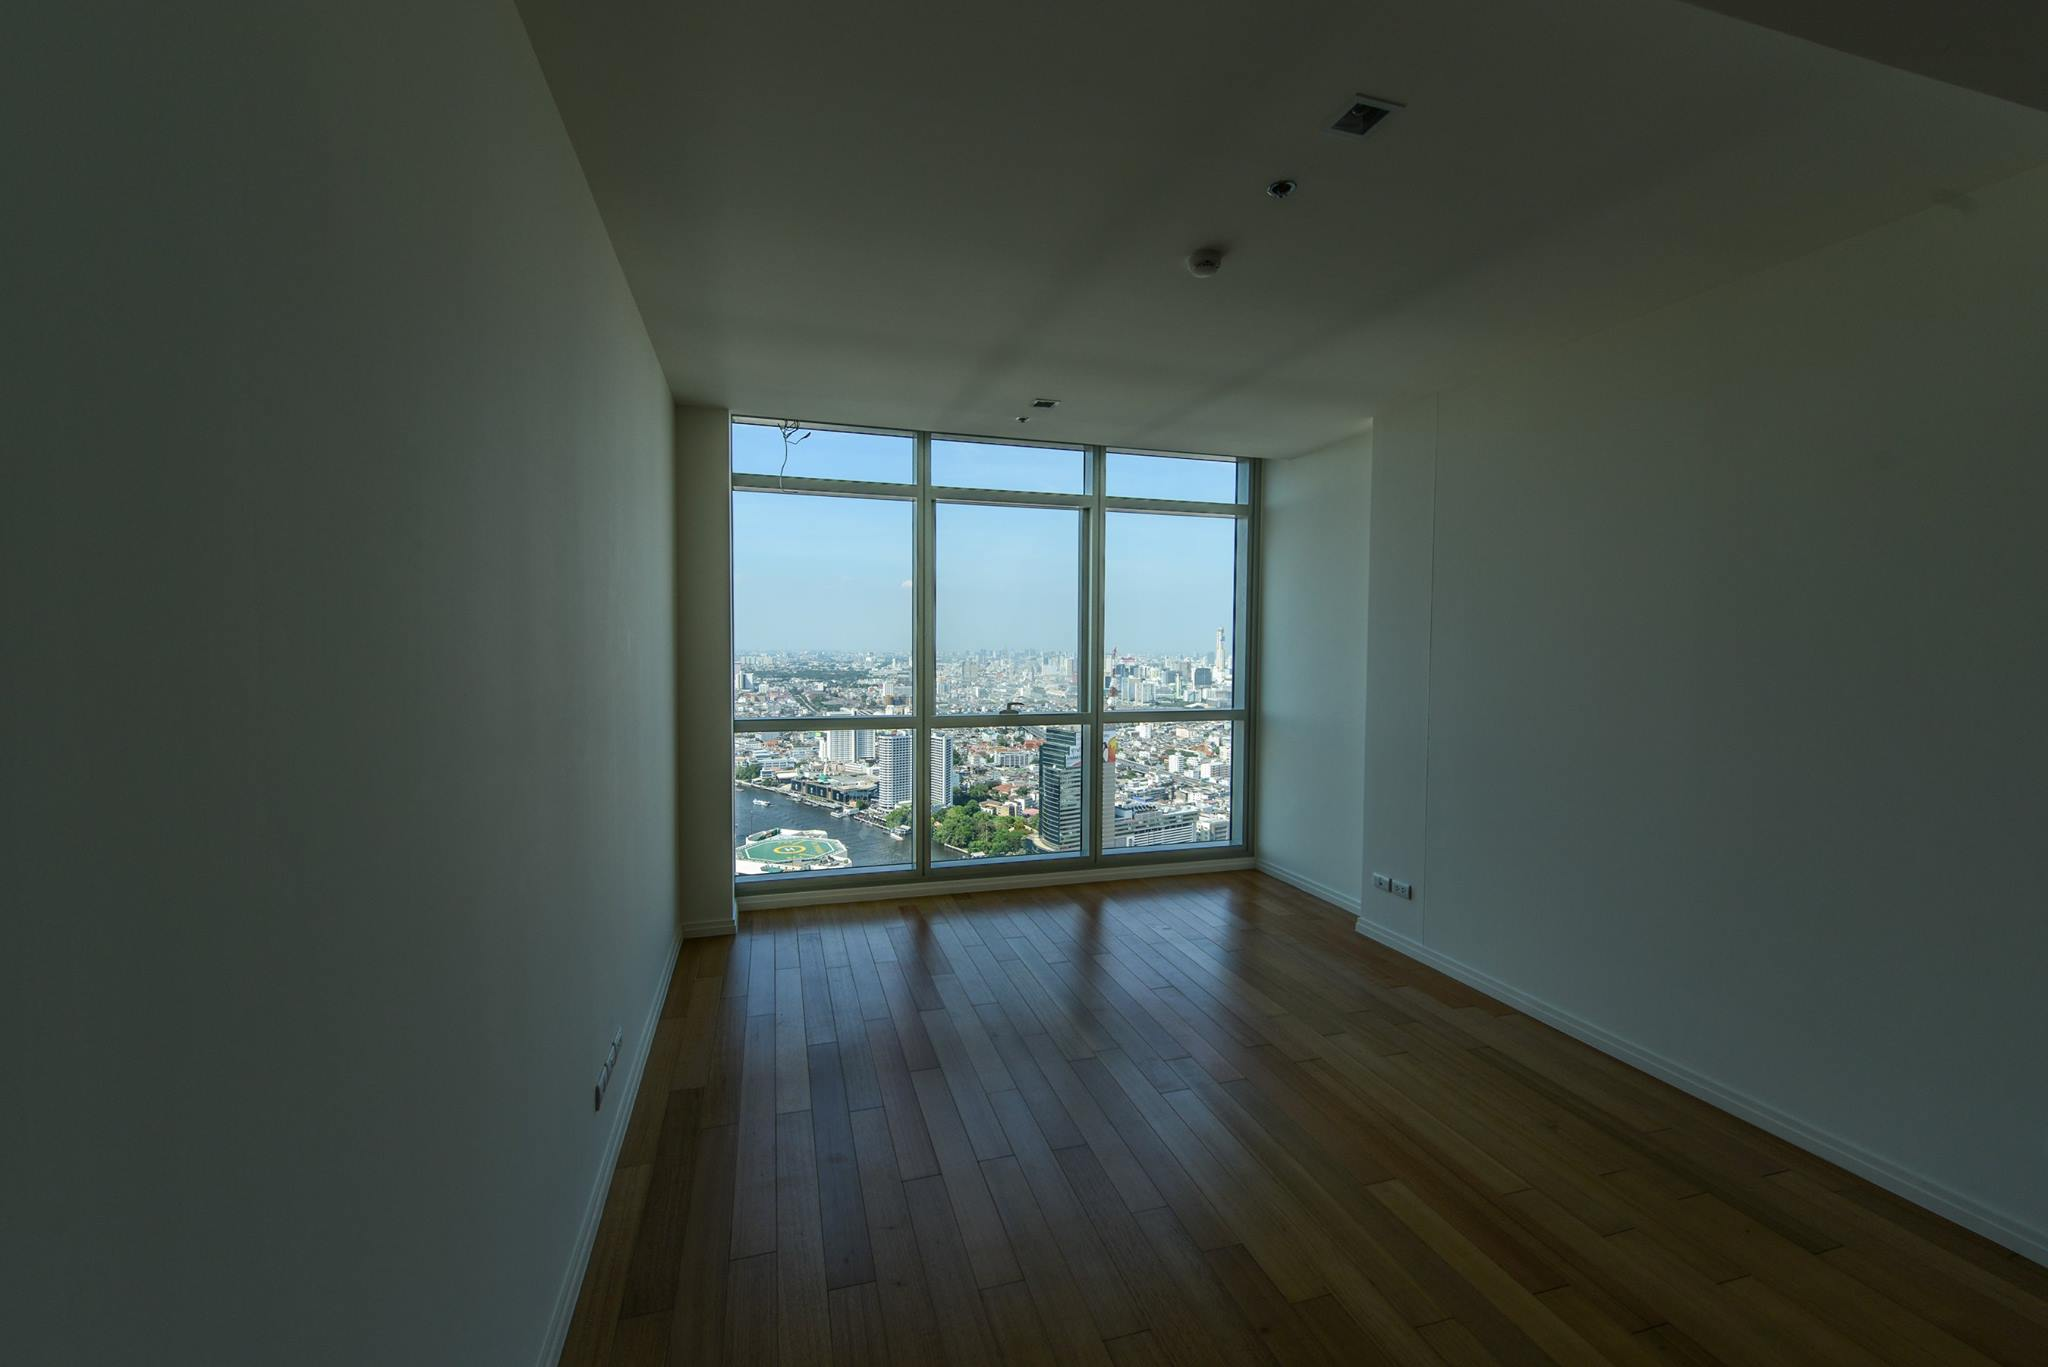 VisionQuest Thailand Property Agency's The River Penthouse 942sq.m spectacular 180 degrees river and city views 20